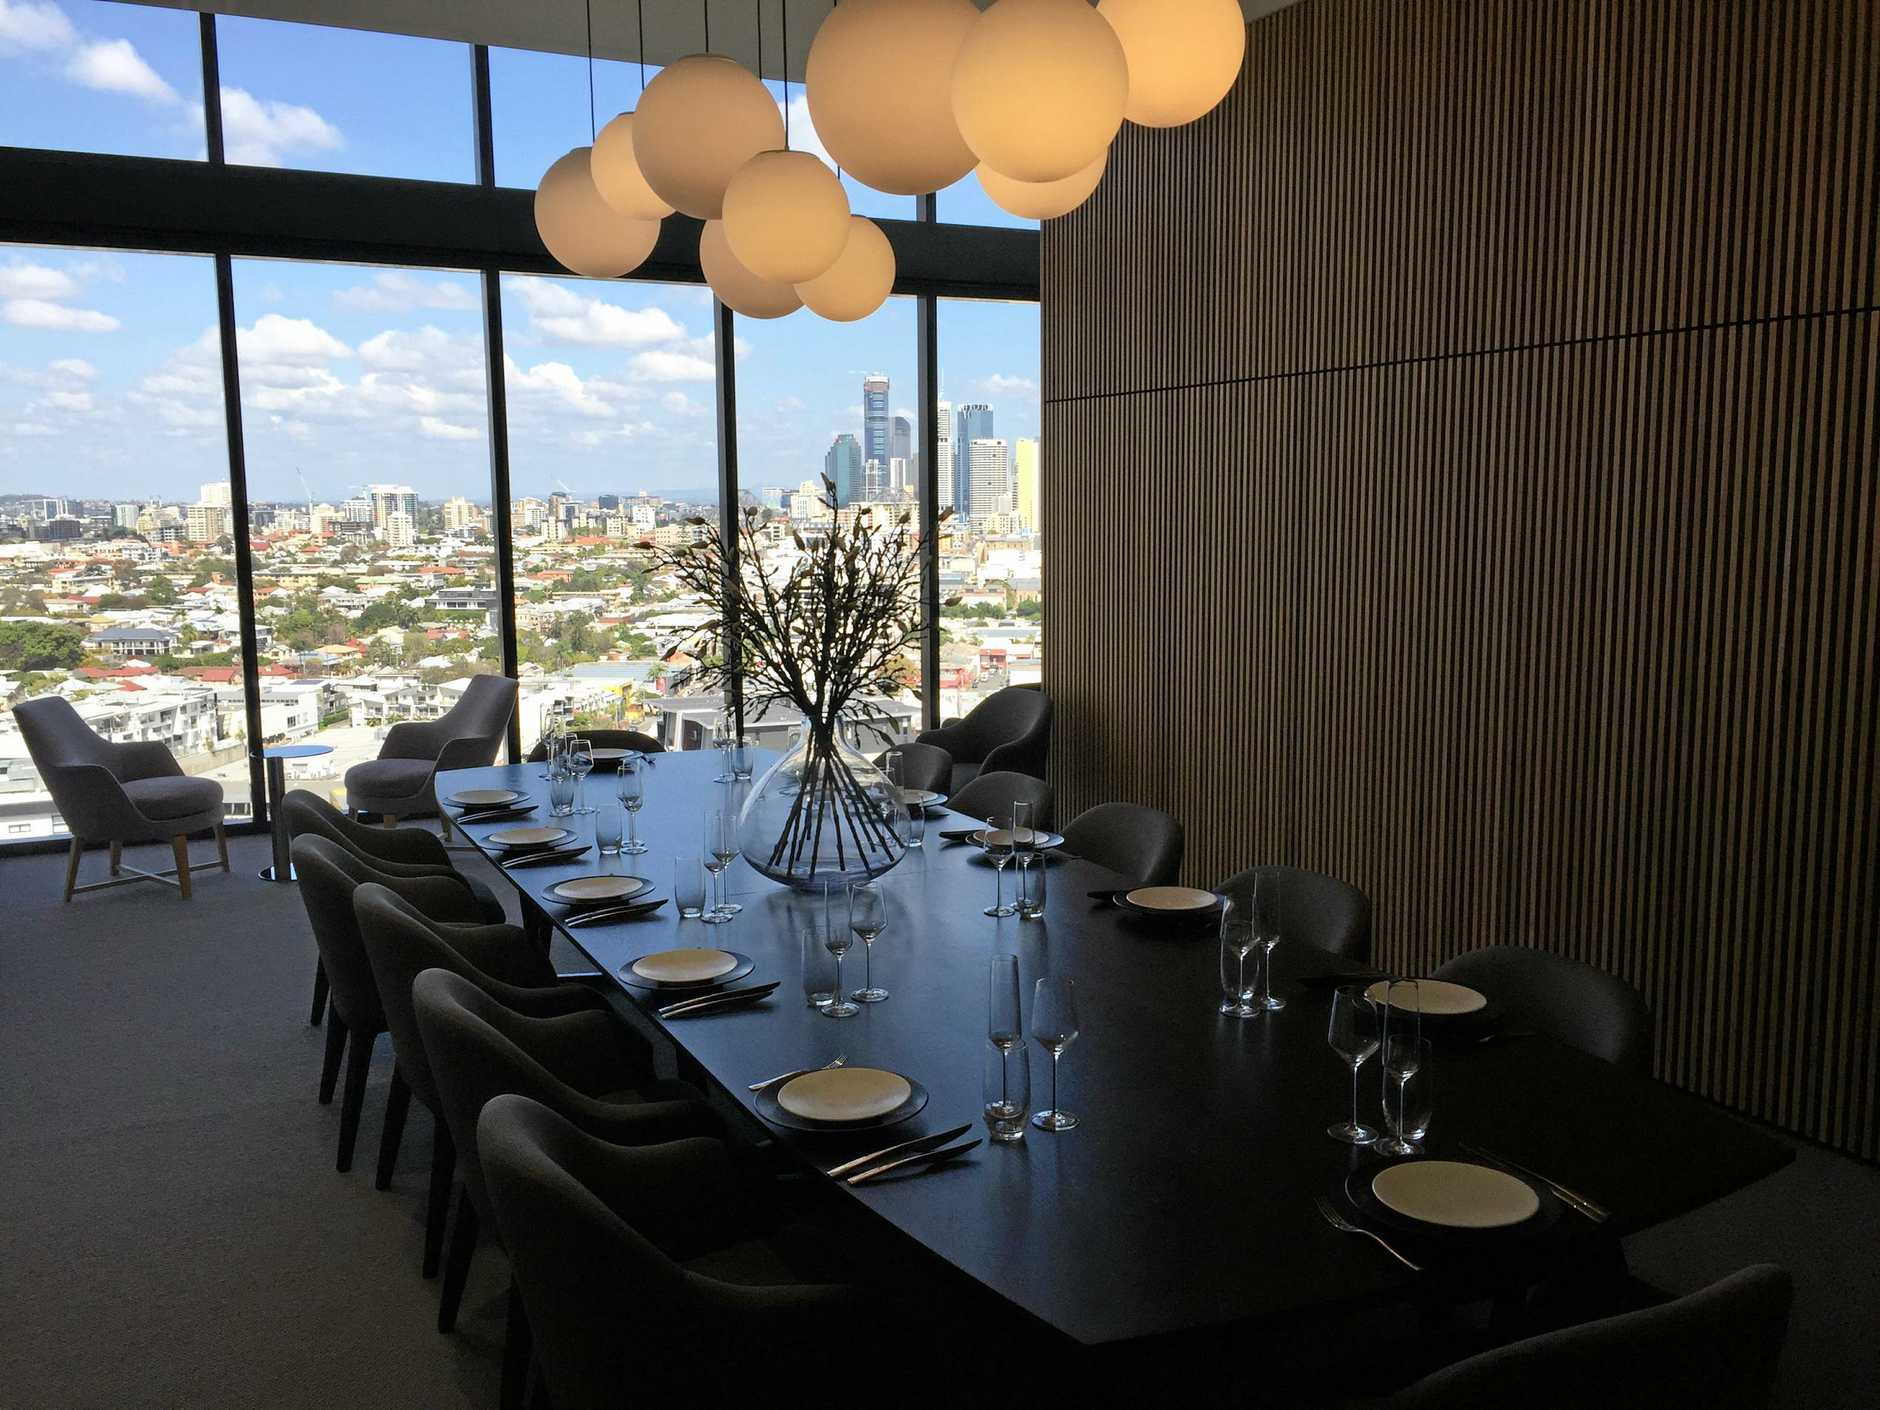 The dining room on the 19th floor of the Aveo Newstead Retirement Community which is all part of the benefits for residents in the vertical village.